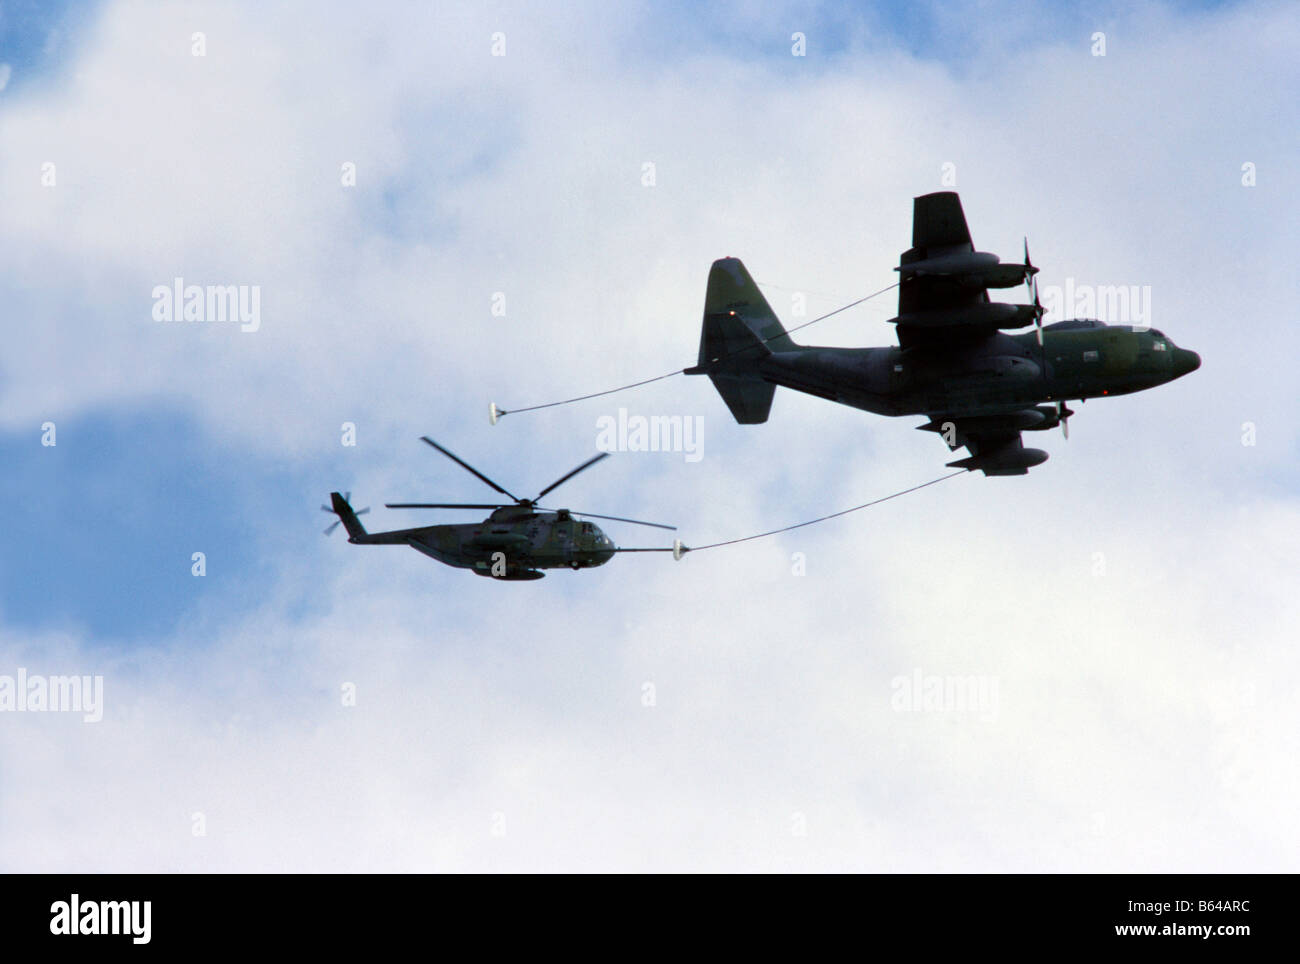 US Air Force KC 130 refueling tanker refuels Jolly Green Giant helicopter, in flight - Stock Image